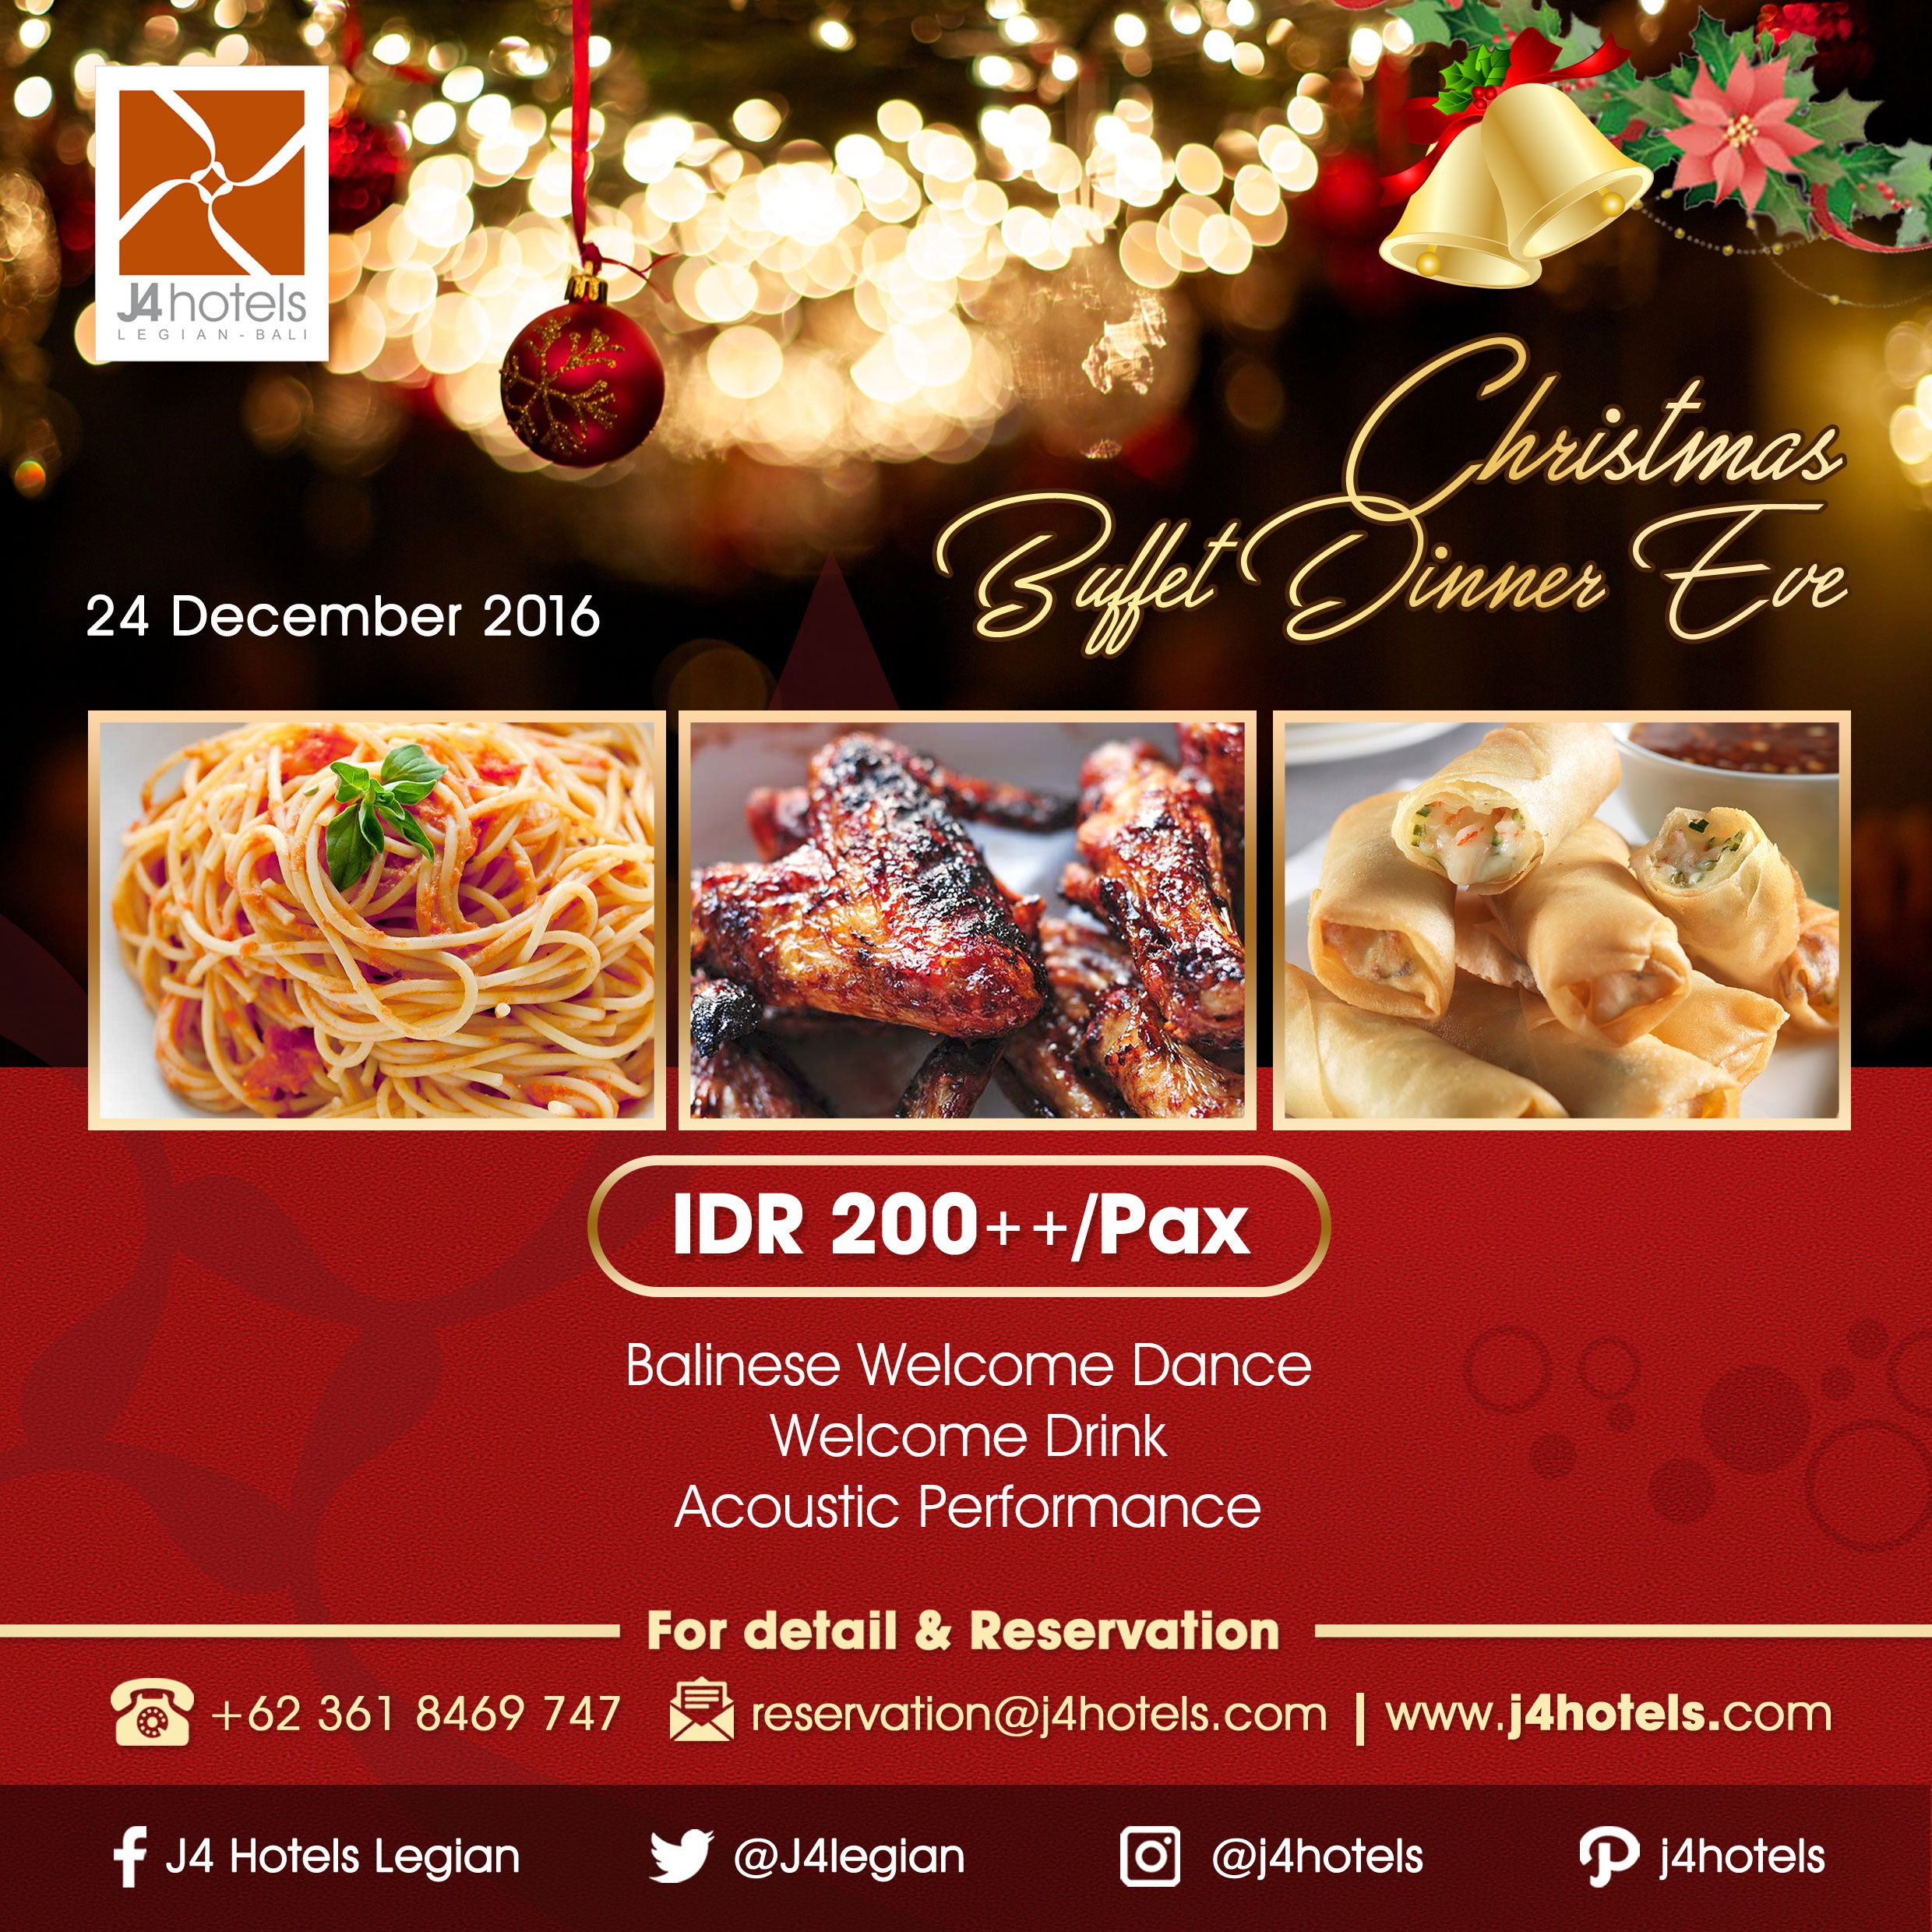 Come and celebrate with your friends and family 😉